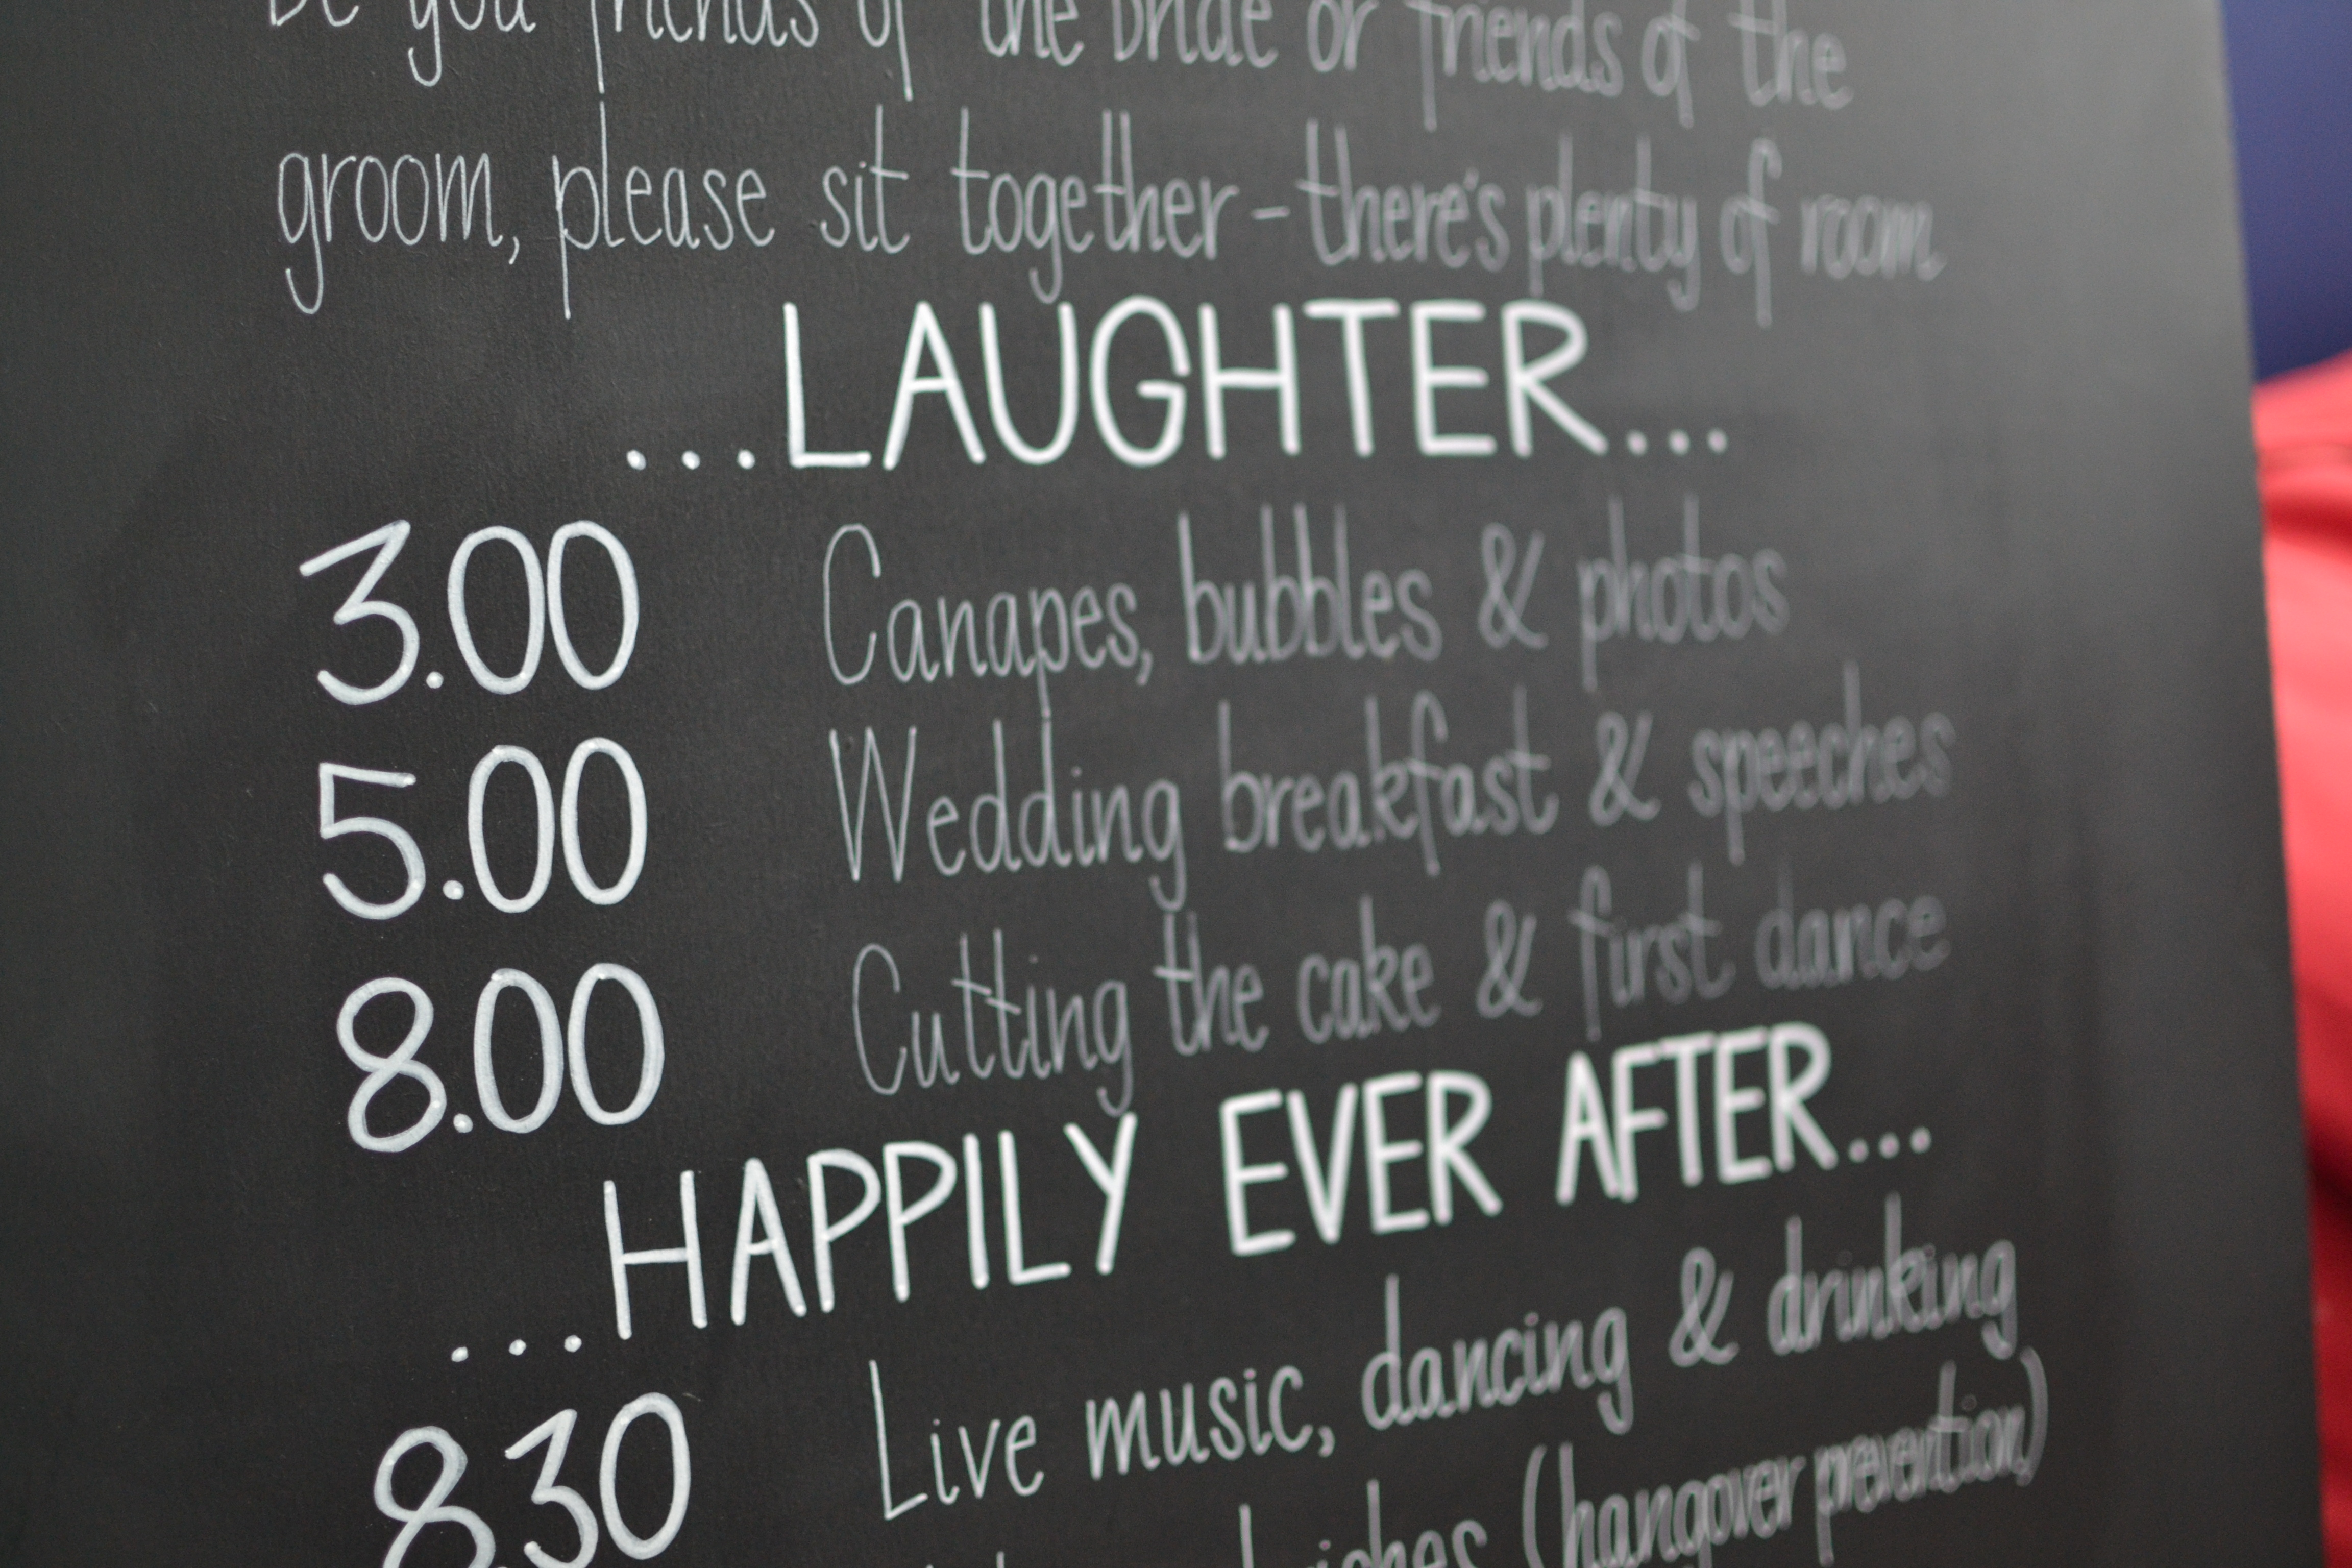 Claire & Nigel 2016 - Wedding Chalkboards - DreamalittleHANDMADE (12)